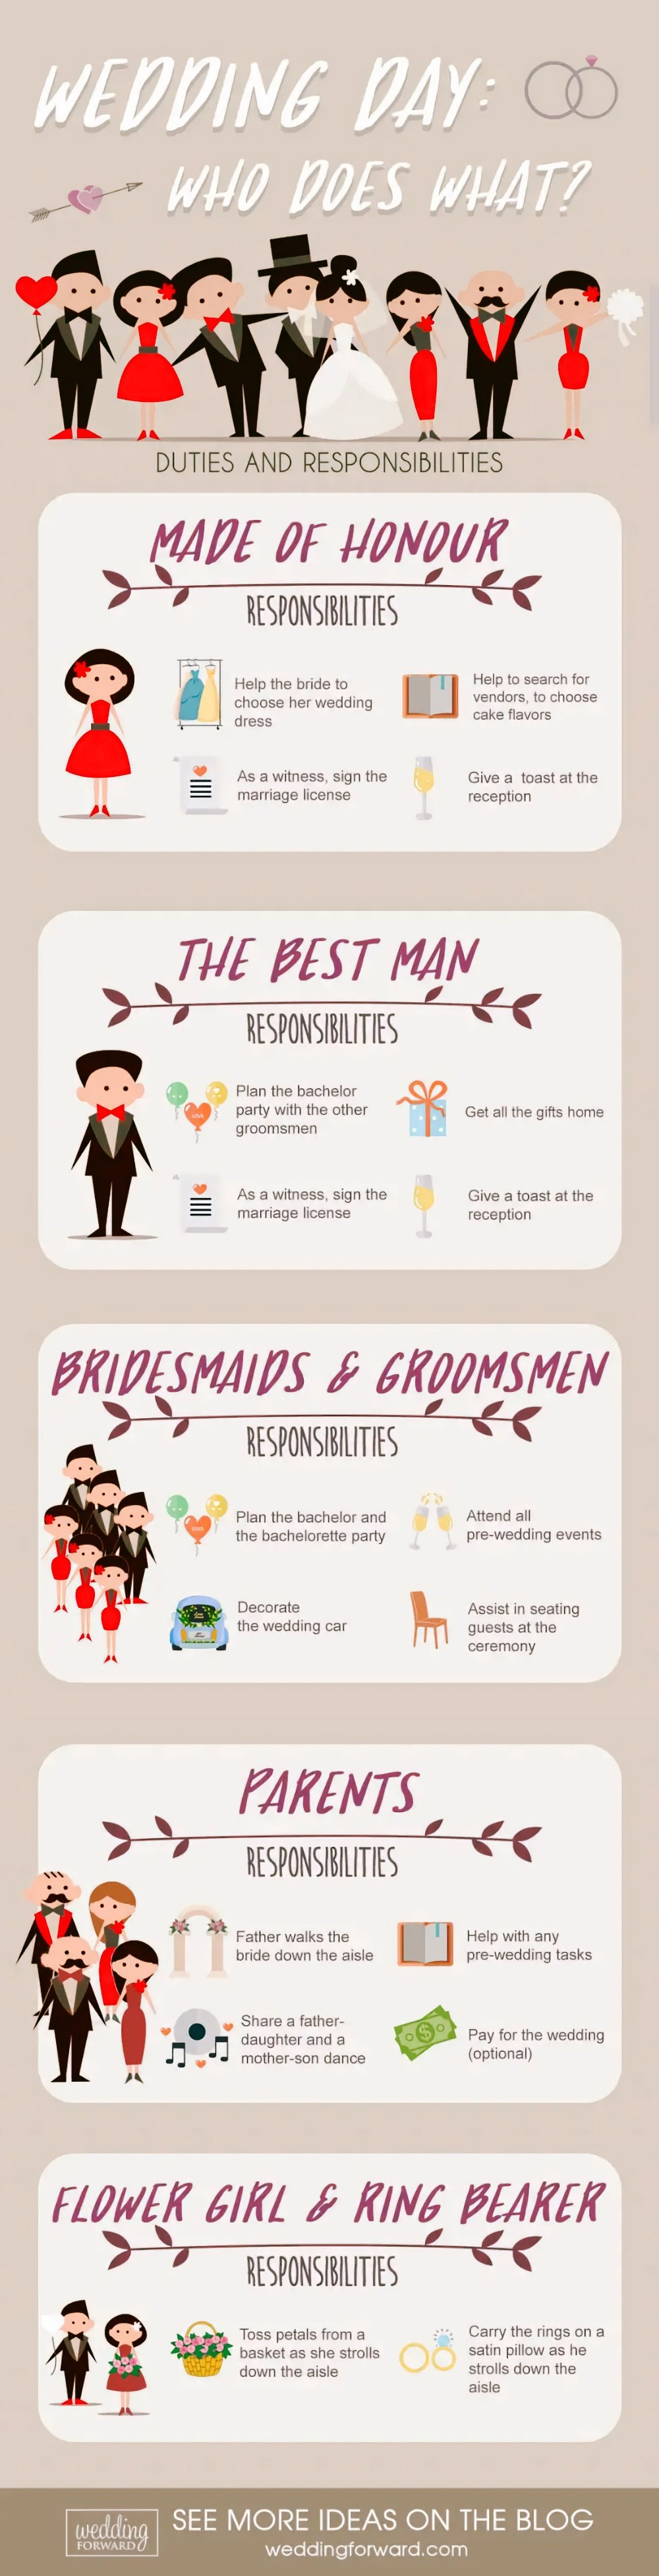 Wedding Roles and Responsibilities